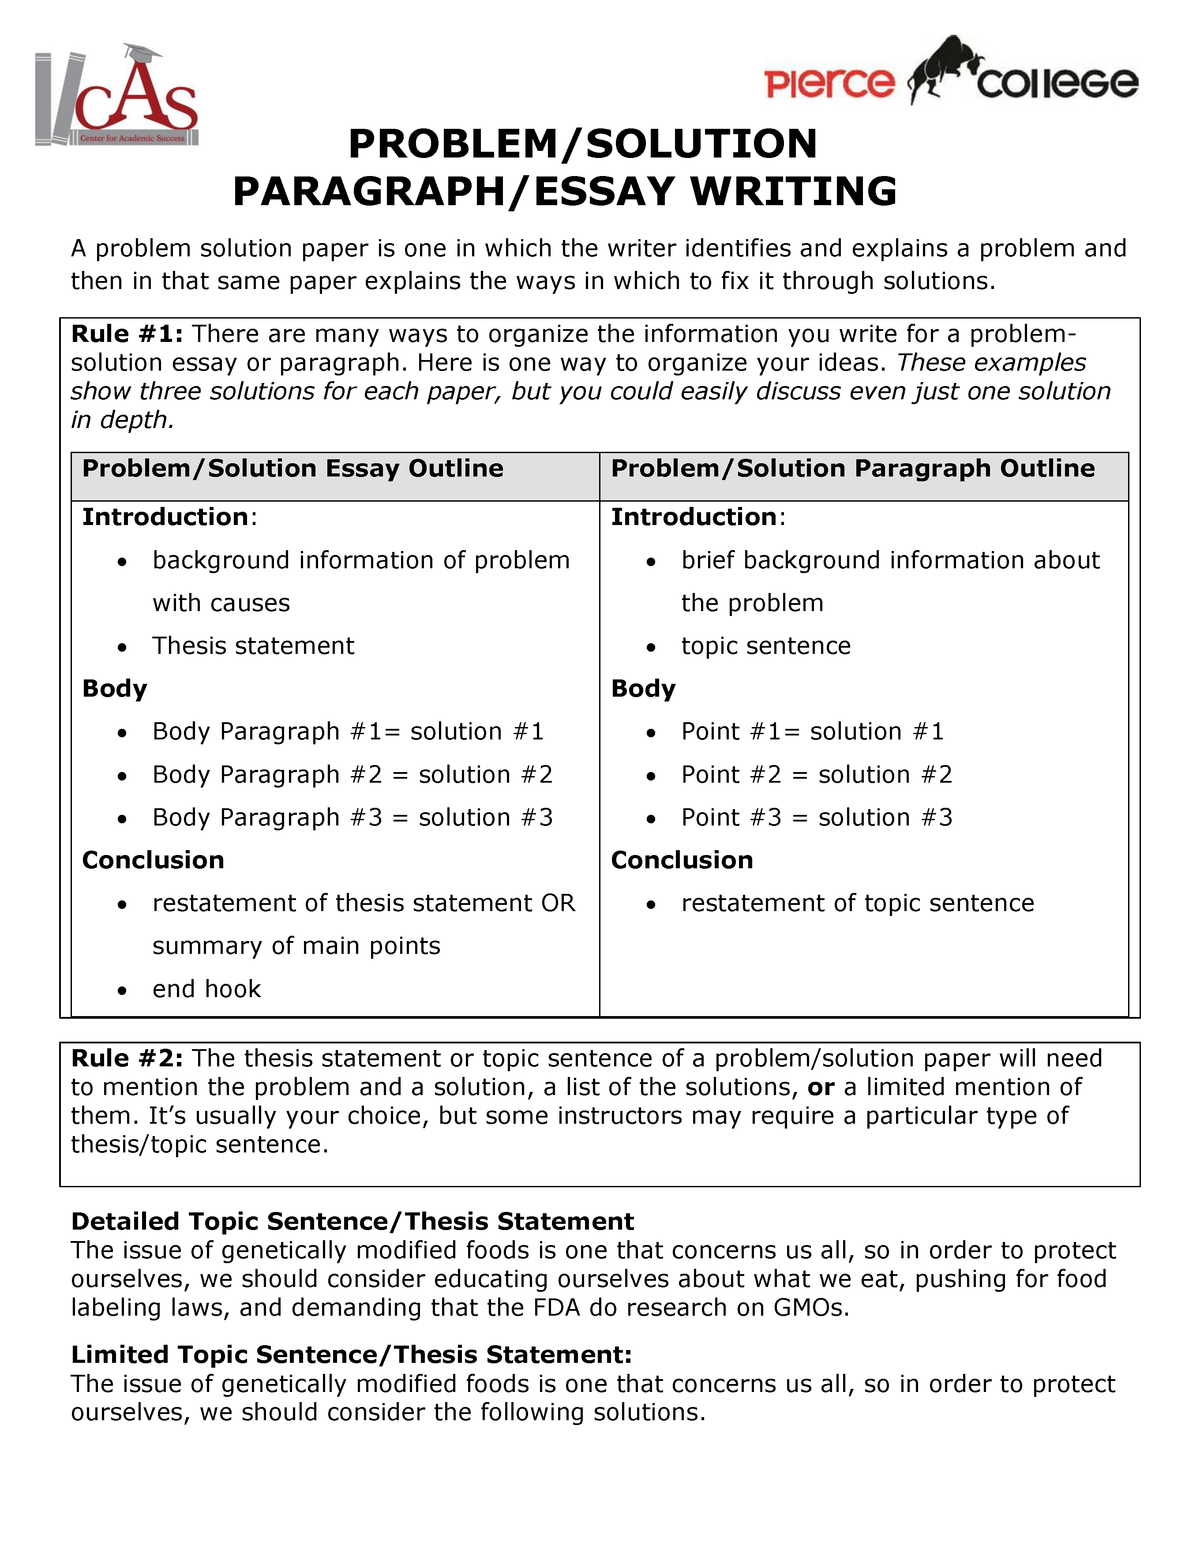 Essay On Healthy Living  Higher English Reflective Essay also An Essay On Science Problem Solution Paragraph Essay Writing  Eng  English  An Essay On English Language